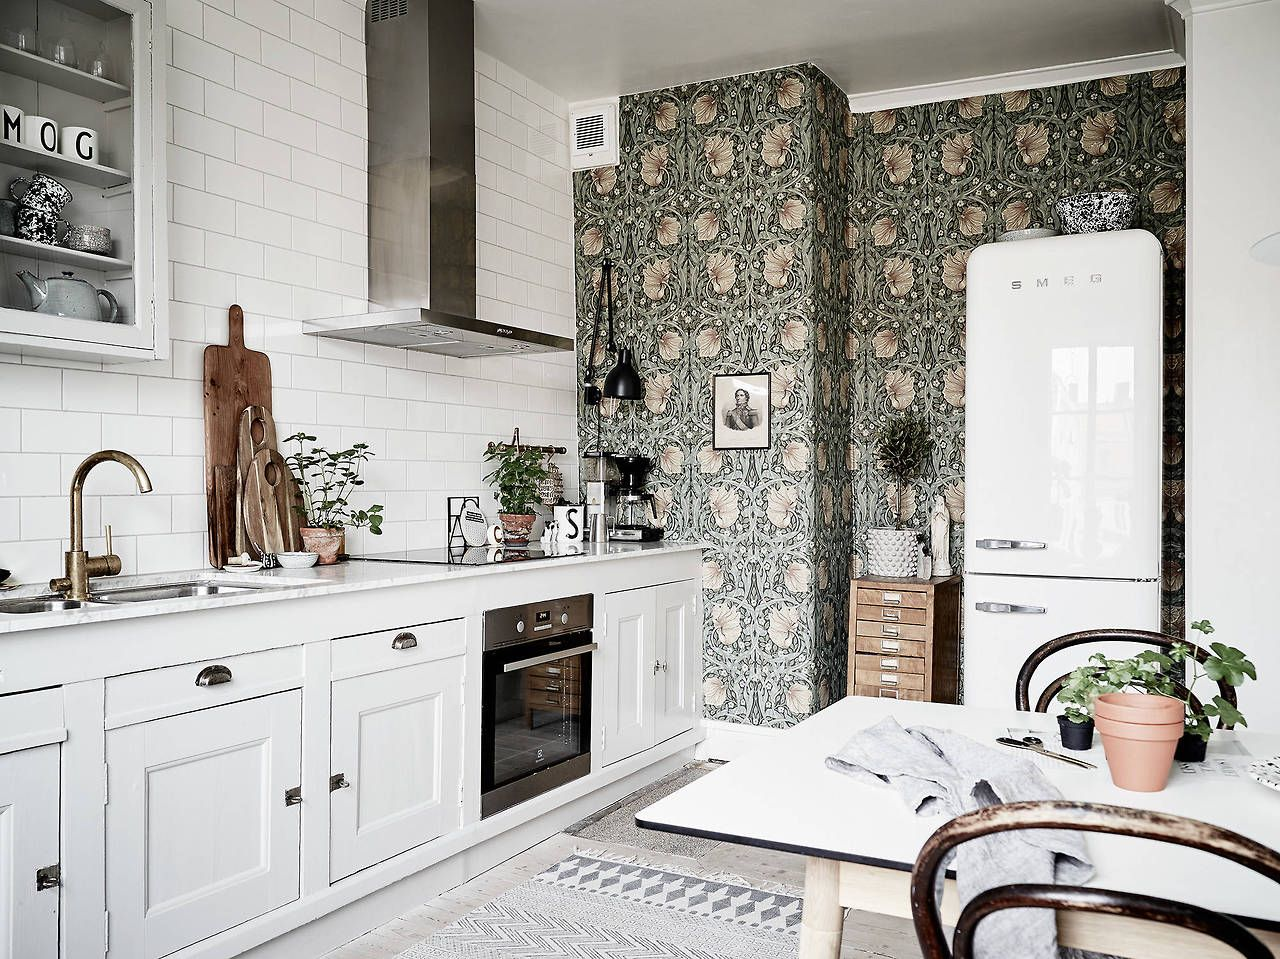 Kitchen With Green Vintage Wallpaper Eclectic Kitchen Design Eclectic Kitchen Kitchen Remodel